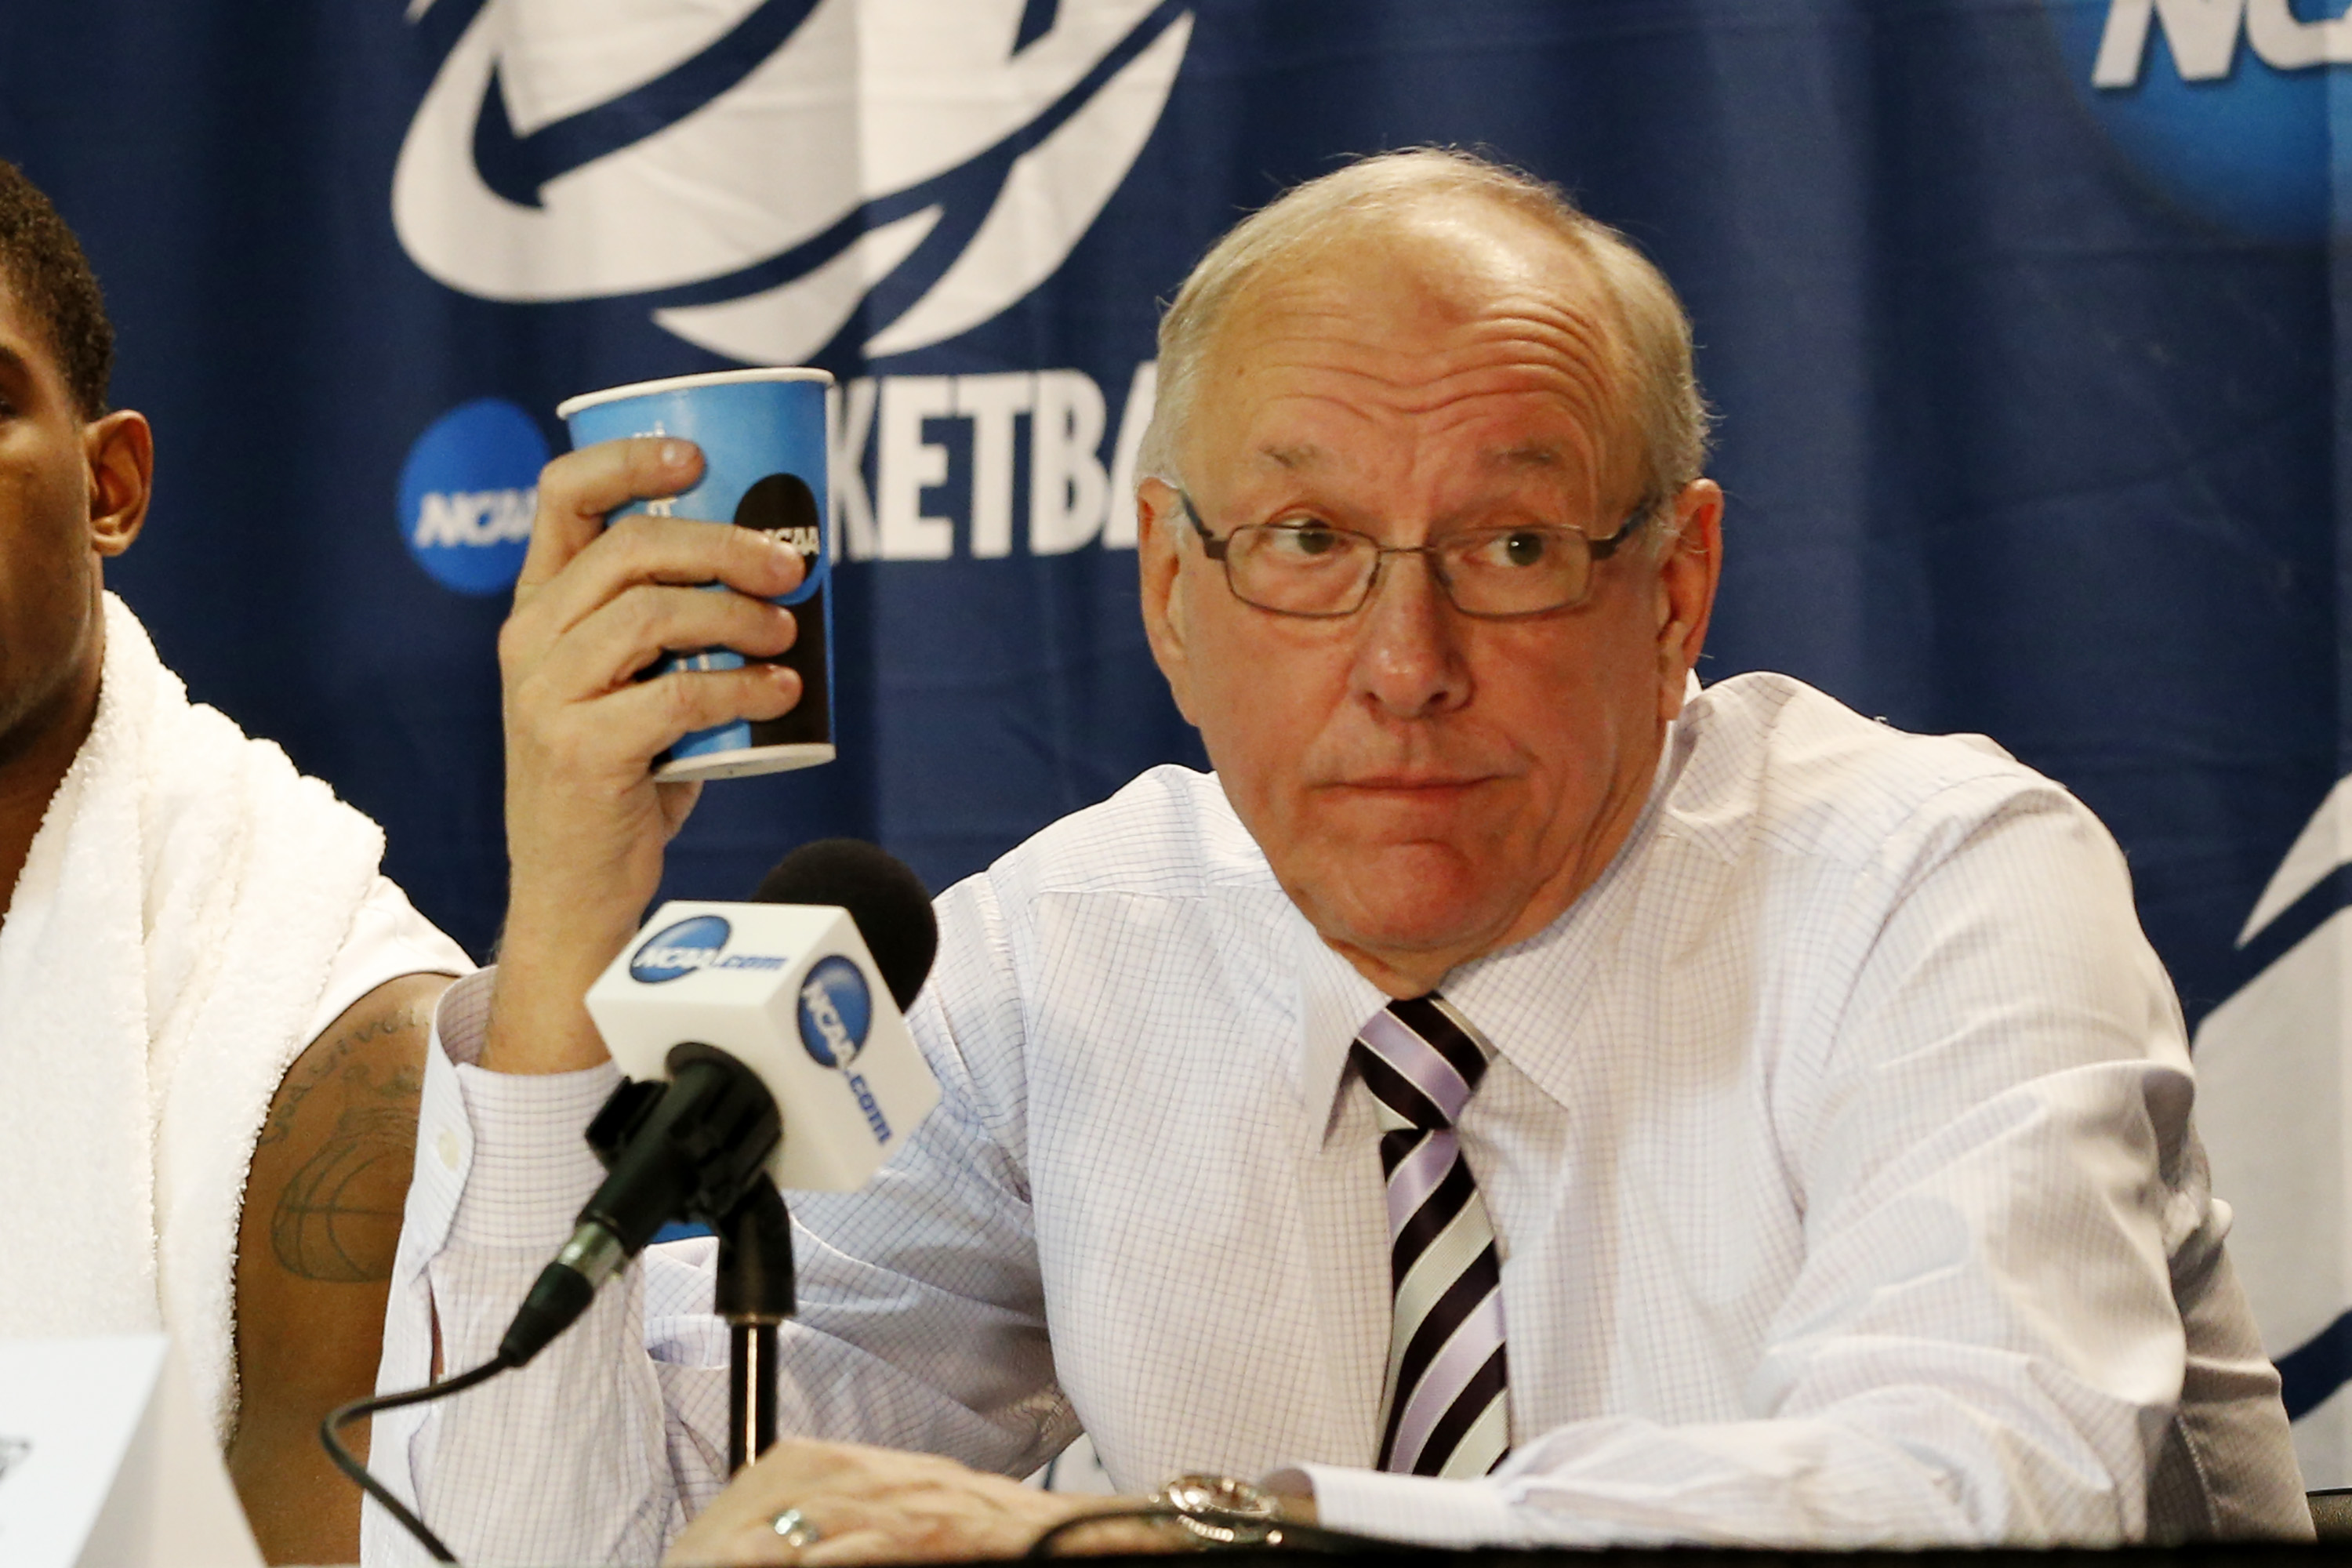 Mar 22, 2014; Buffalo, NY, USA; Syracuse Orange head coach Jim Boeheim answers questions at a news conference after a men's college basketball game against Dayton Flyers after the third round of the 2014 NCAA Tournament at First Niagara Center. (Kevin Hoffman-USA TODAY Sports)